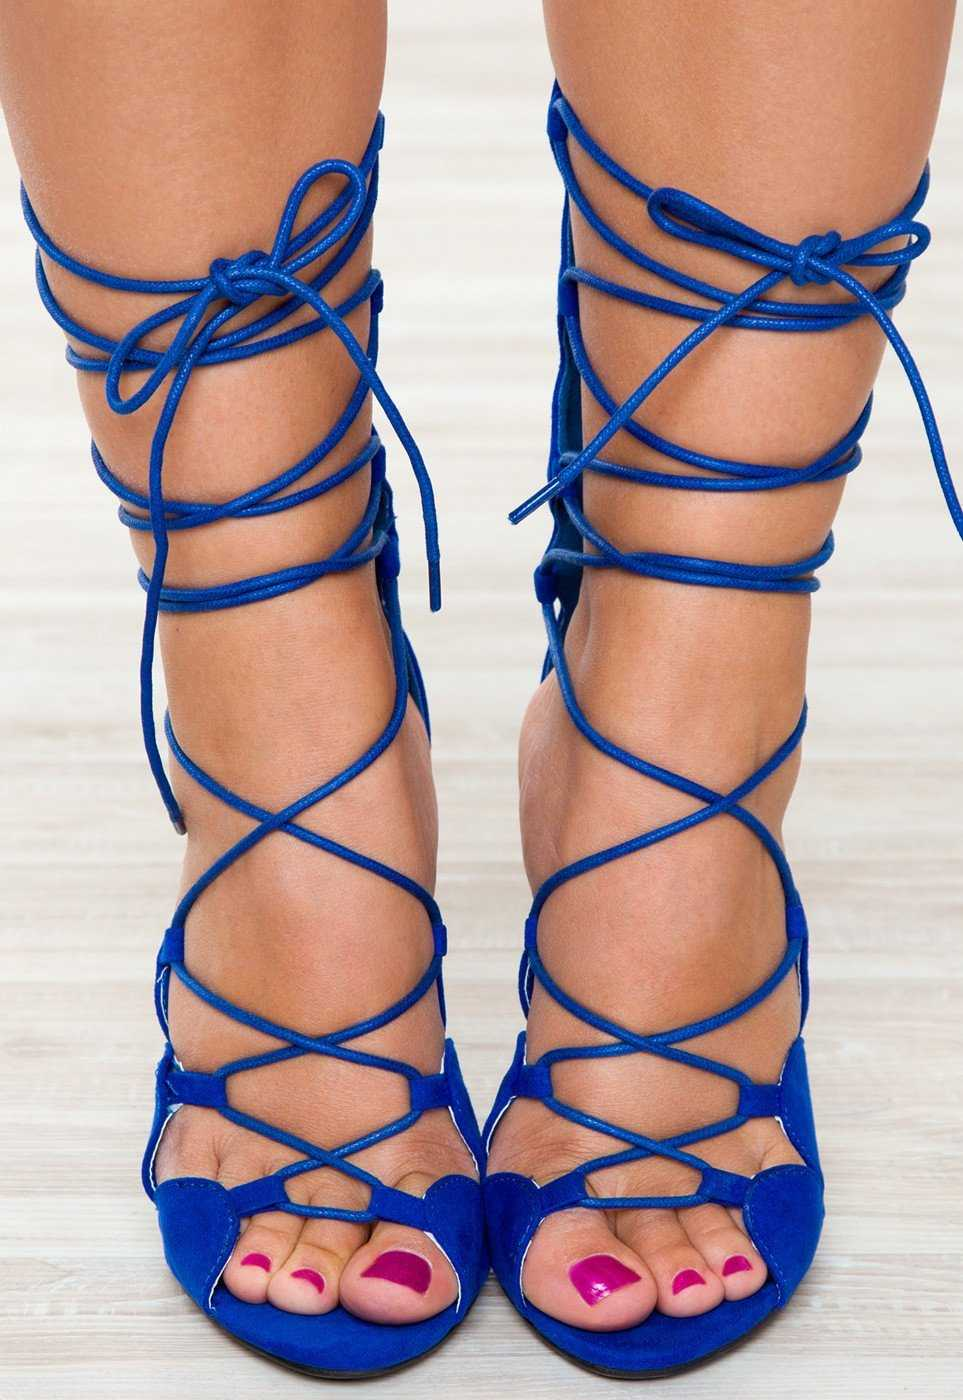 Shoes - Can't Even Lace Up Heels - Blue